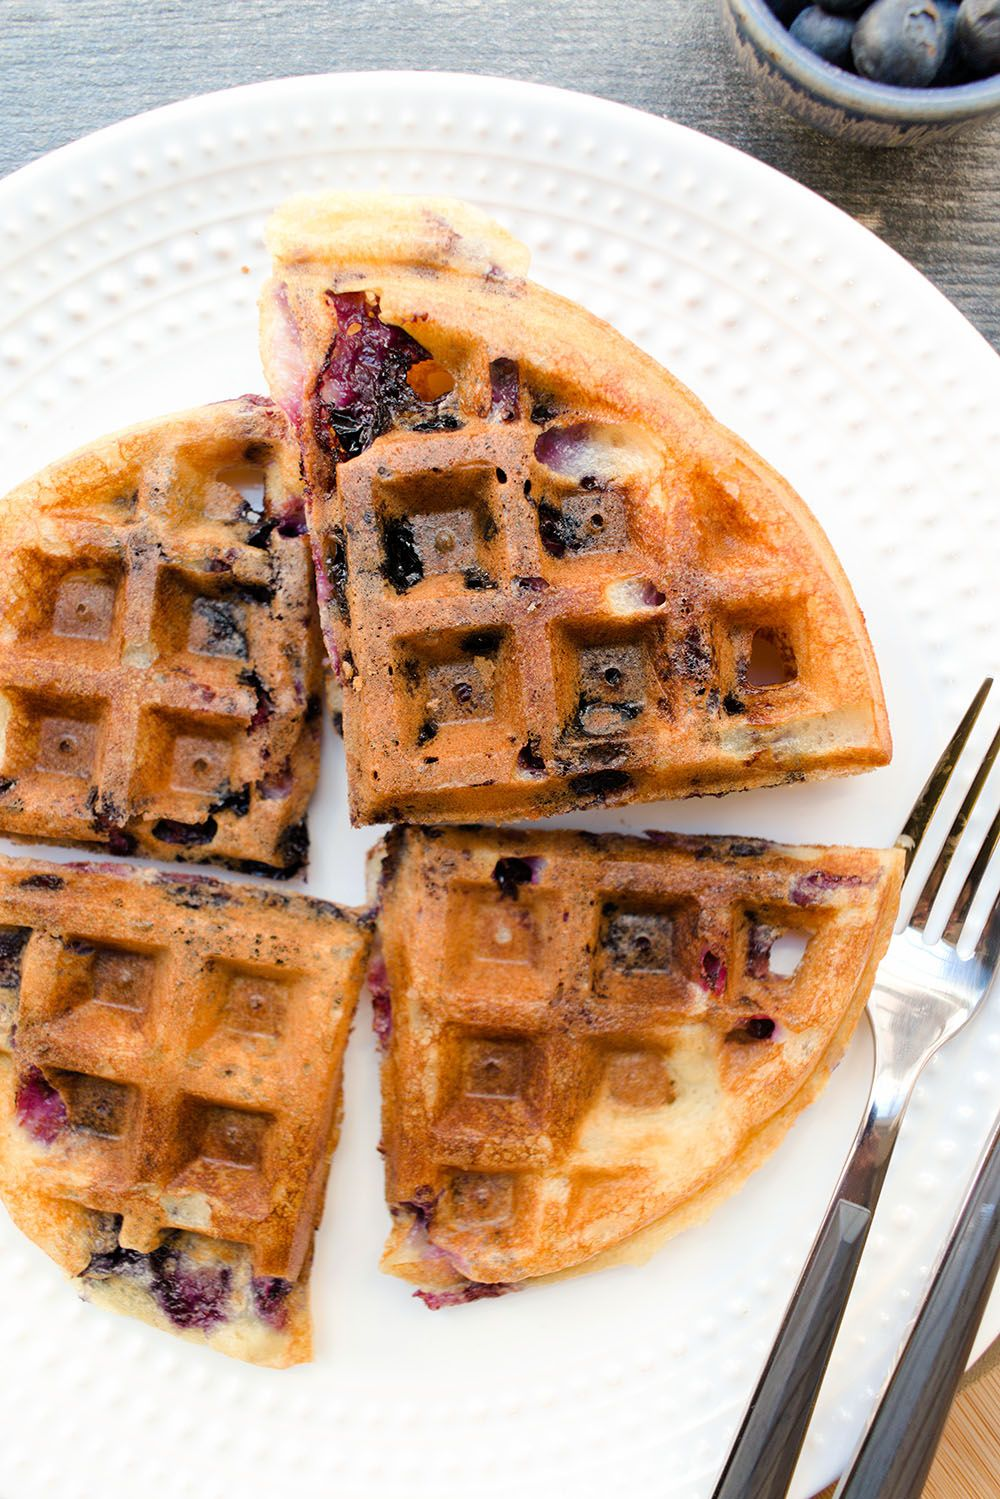 Lemony Sourdough Waffles with Blueberries